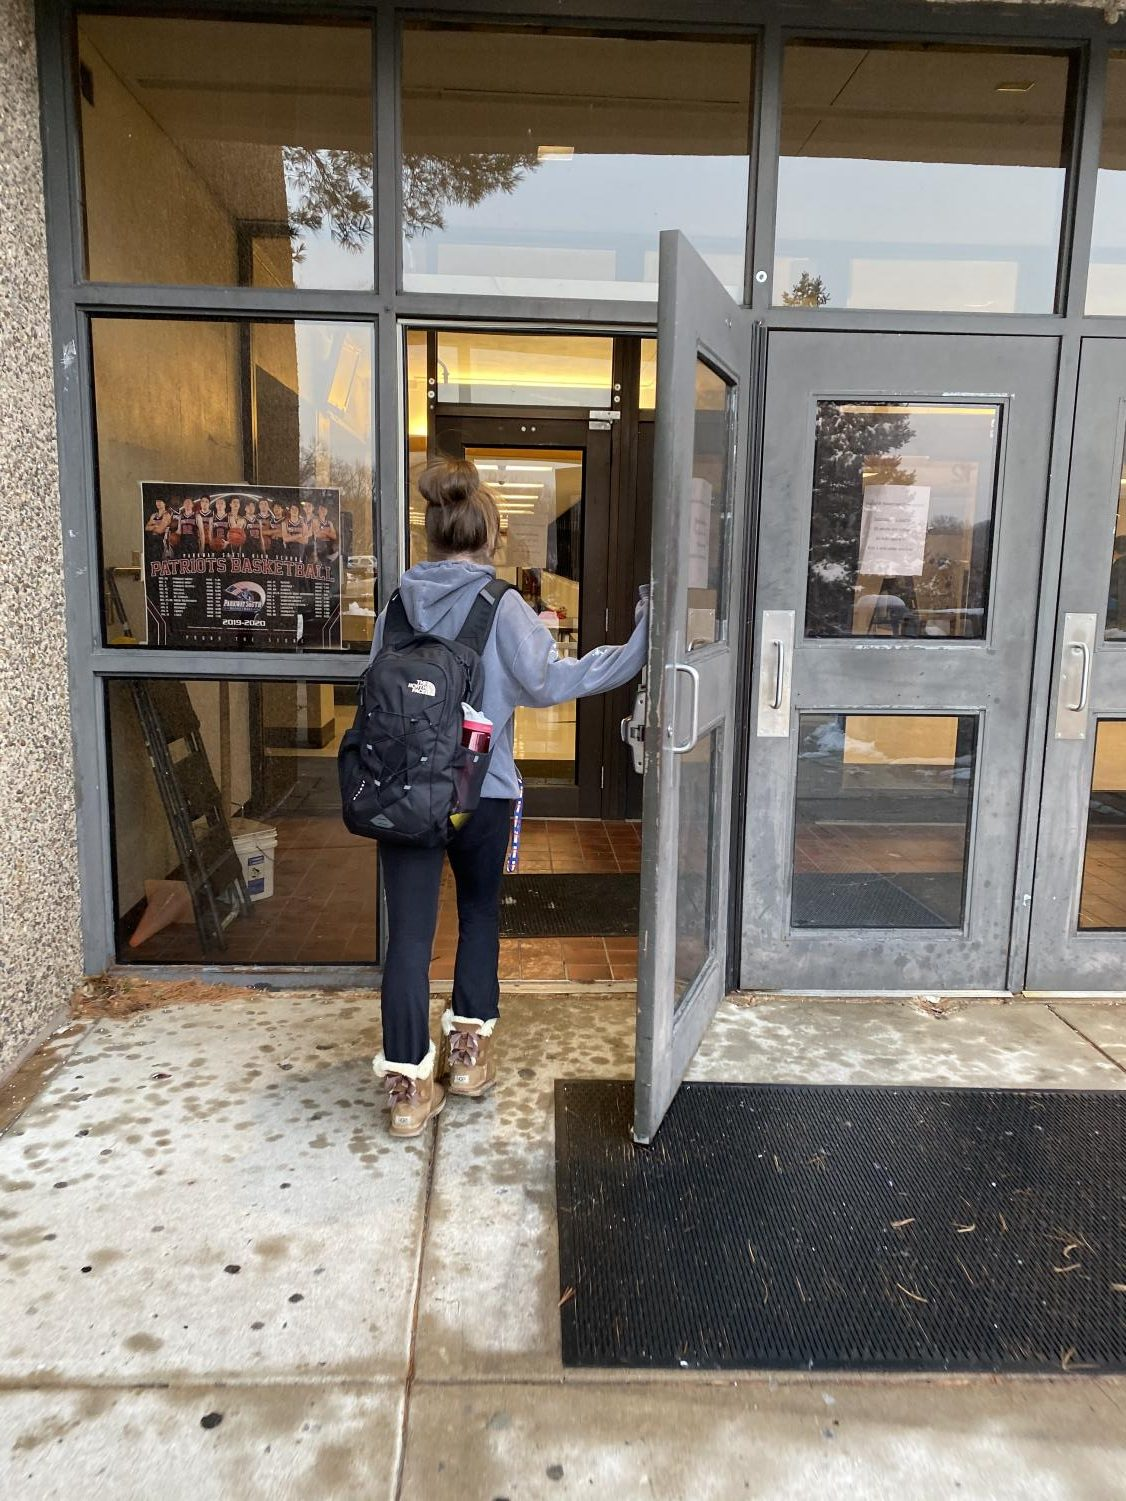 Senior Molly Hogan rushes to get to class on time, Dec. 18.